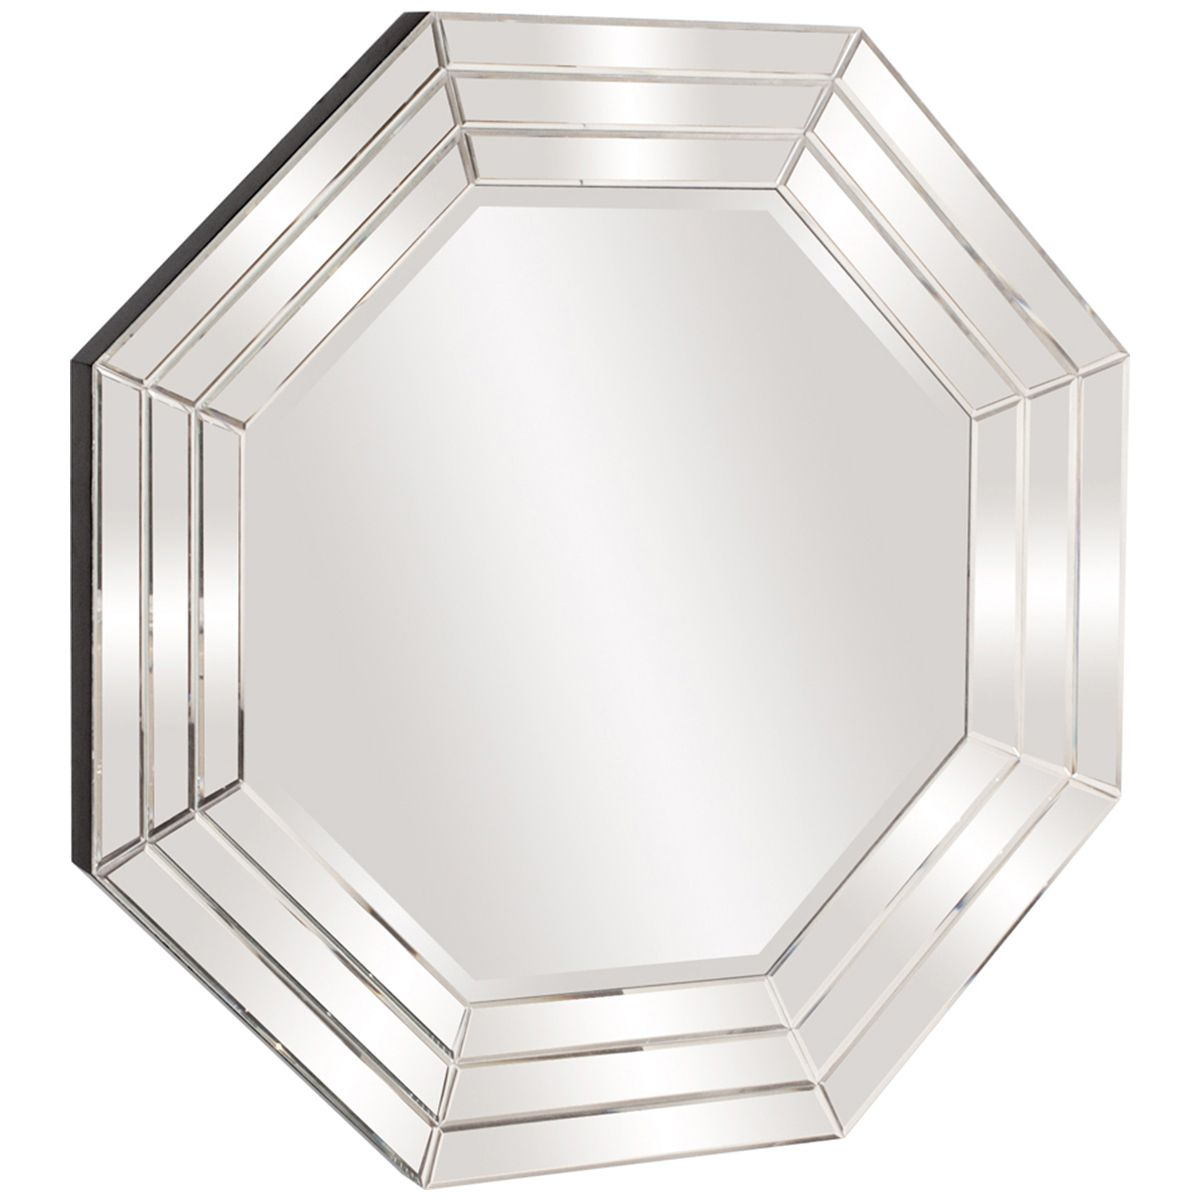 Howard Elliott Jessica Octagon Mirror 99070